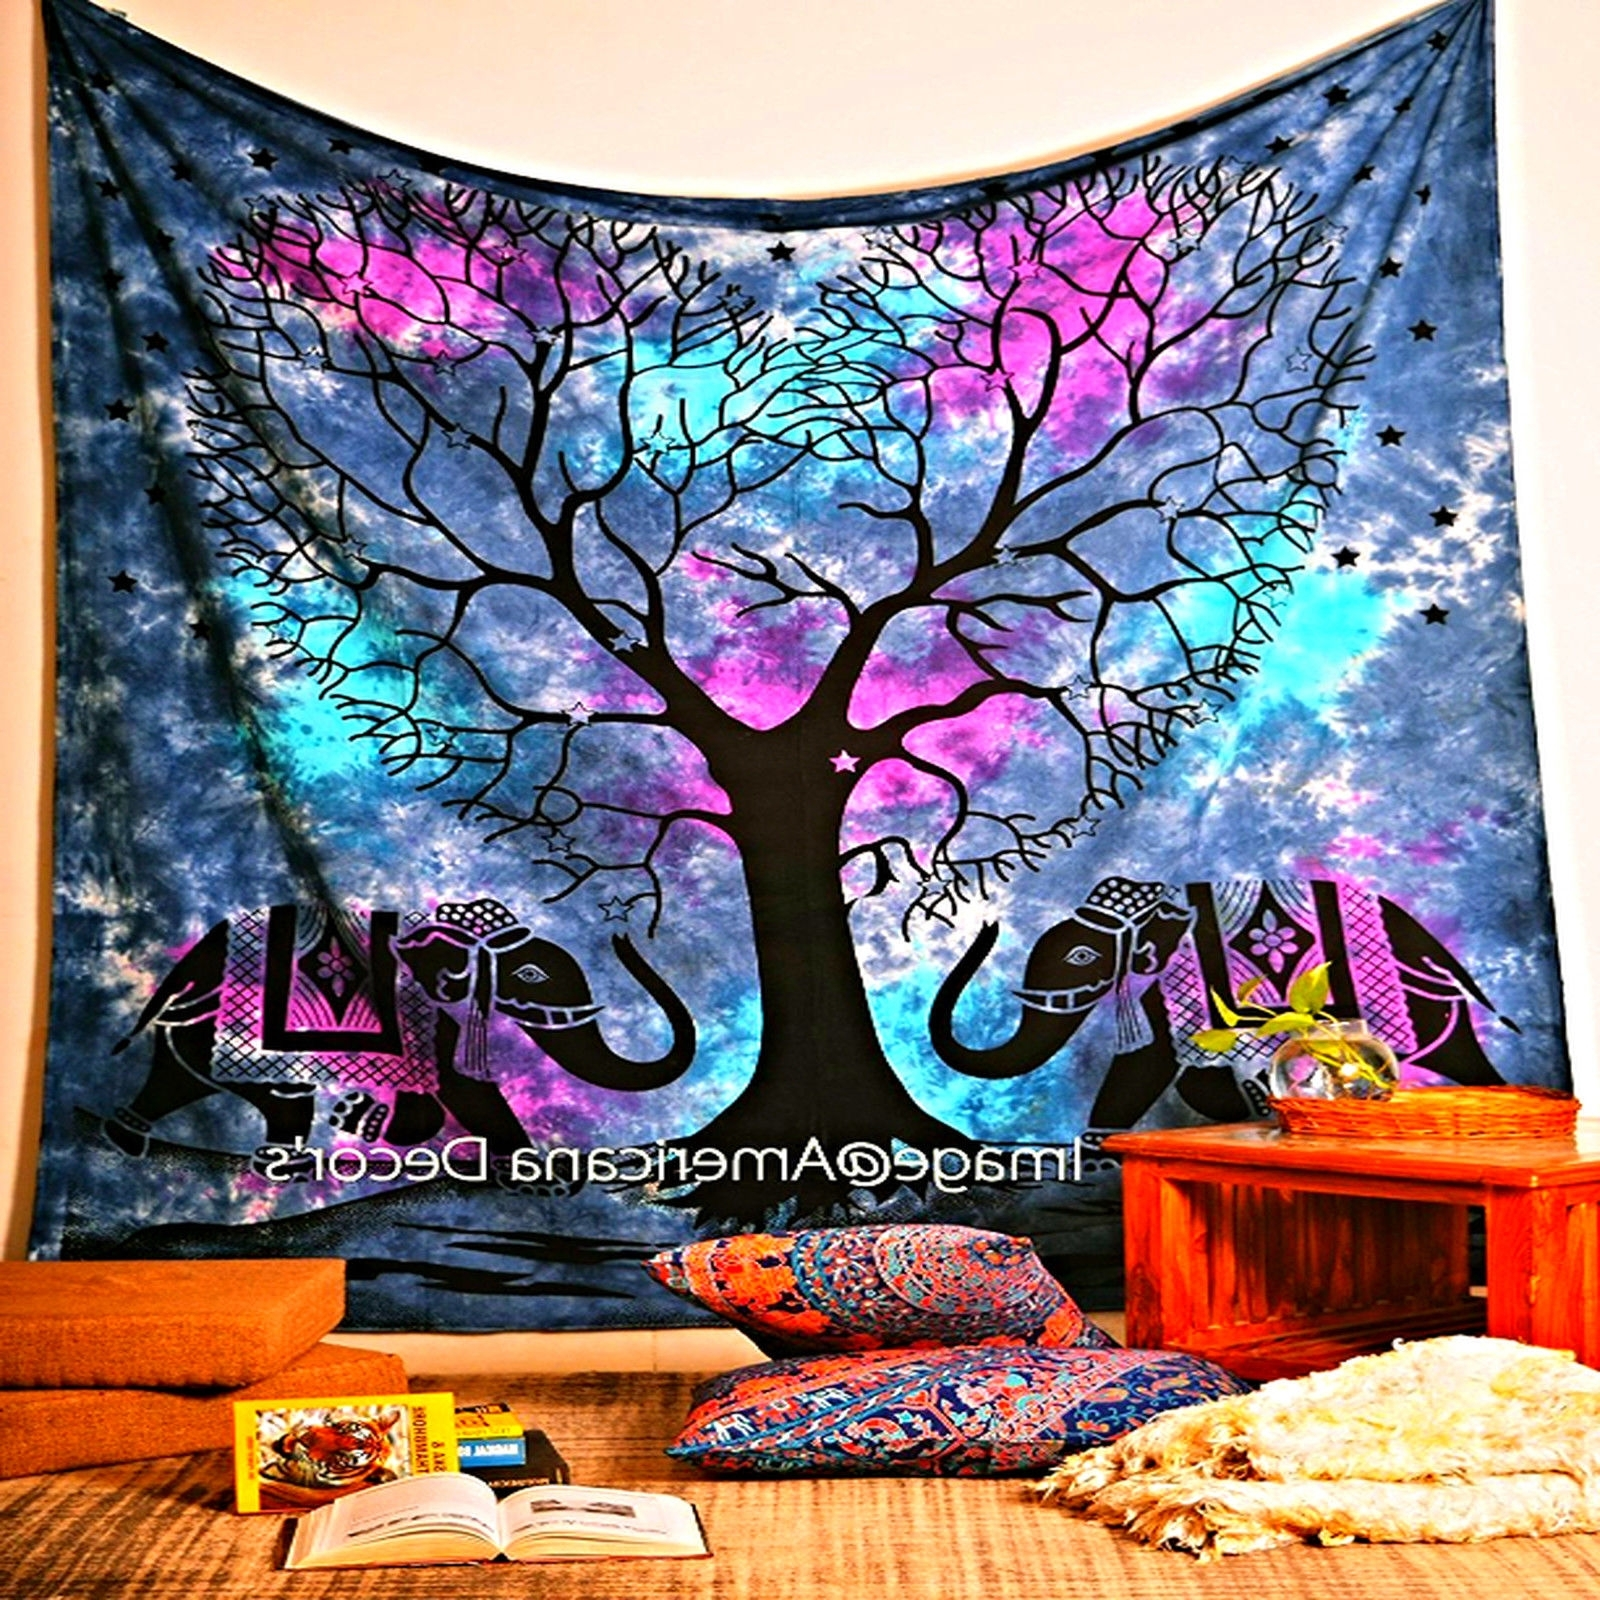 Bohemian Wall Art Tapestry Tree Elephant Indian Bedspread Blanket Pertaining To Latest Bohemian Wall Art (View 6 of 20)